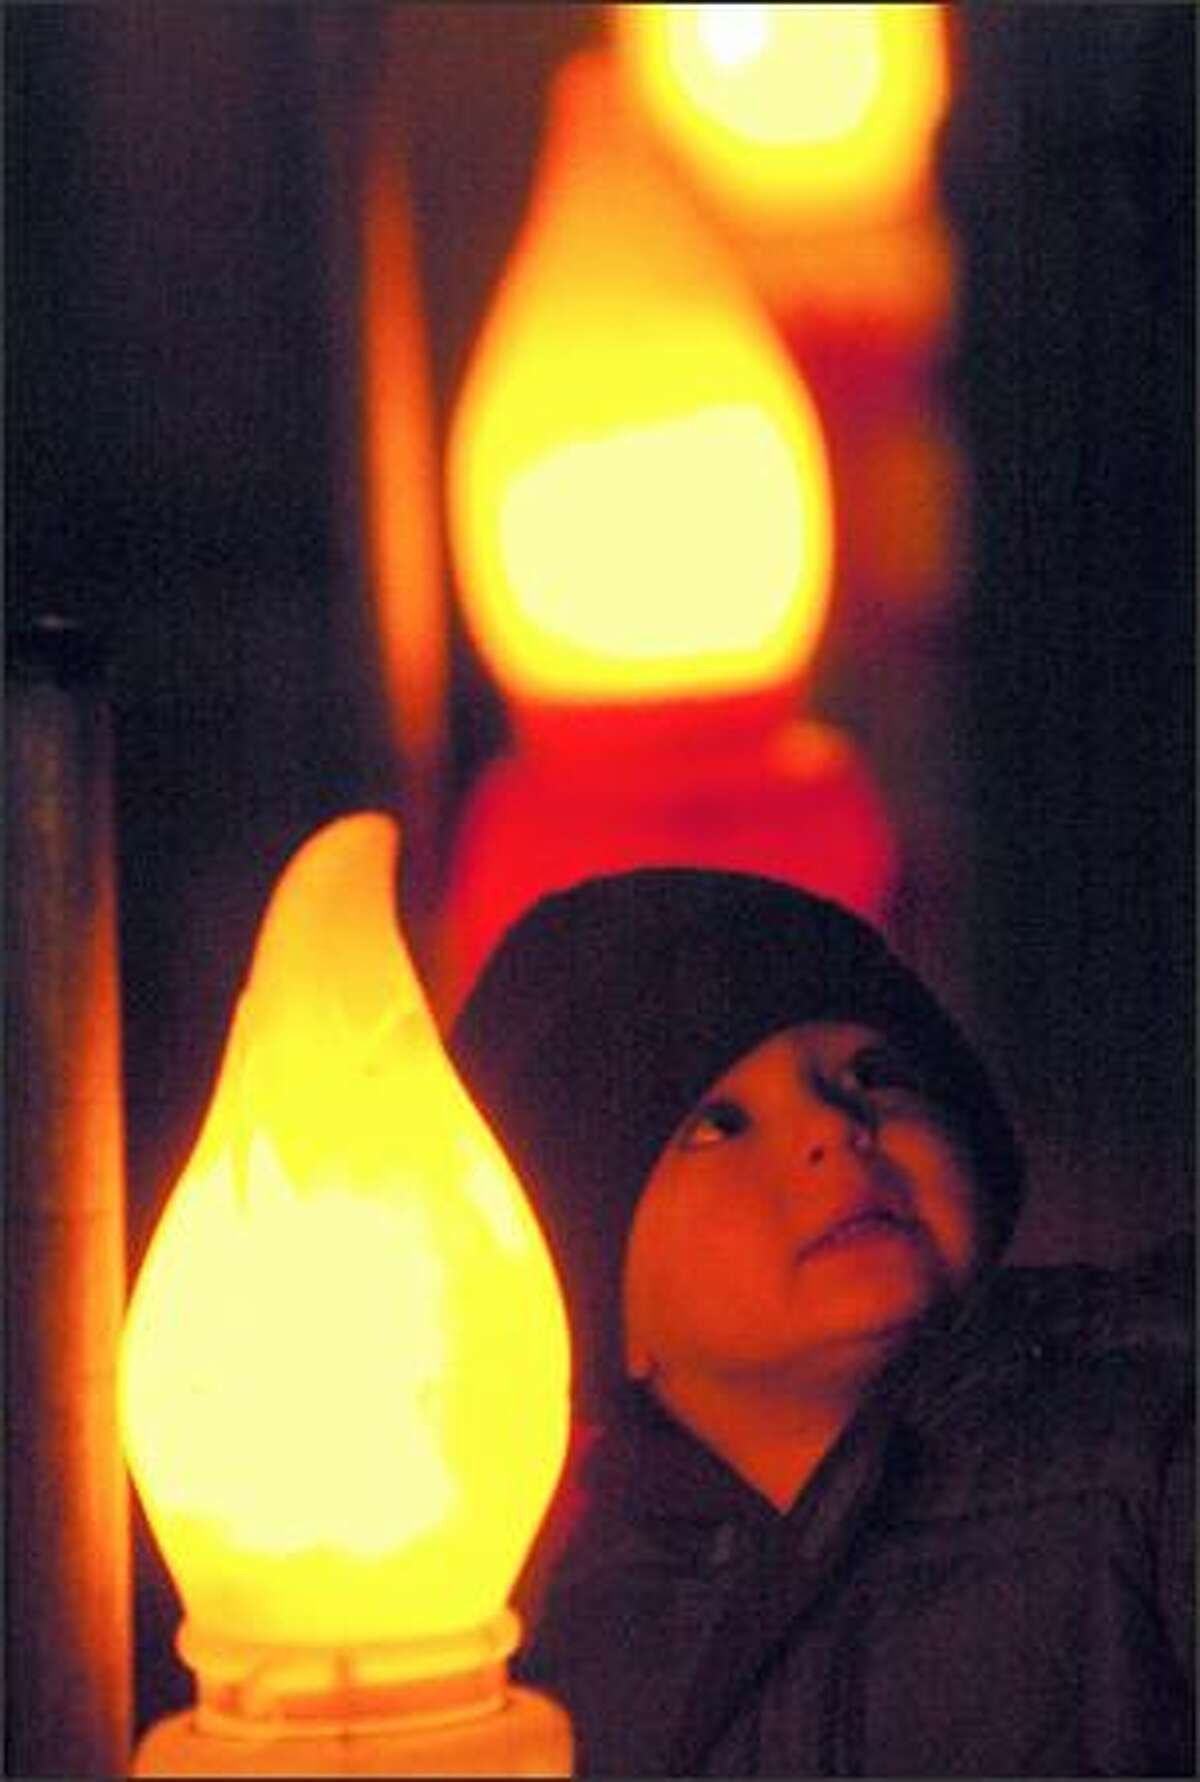 Two-year-old Ethan Cherry is bathed in light from a row of electric candles at